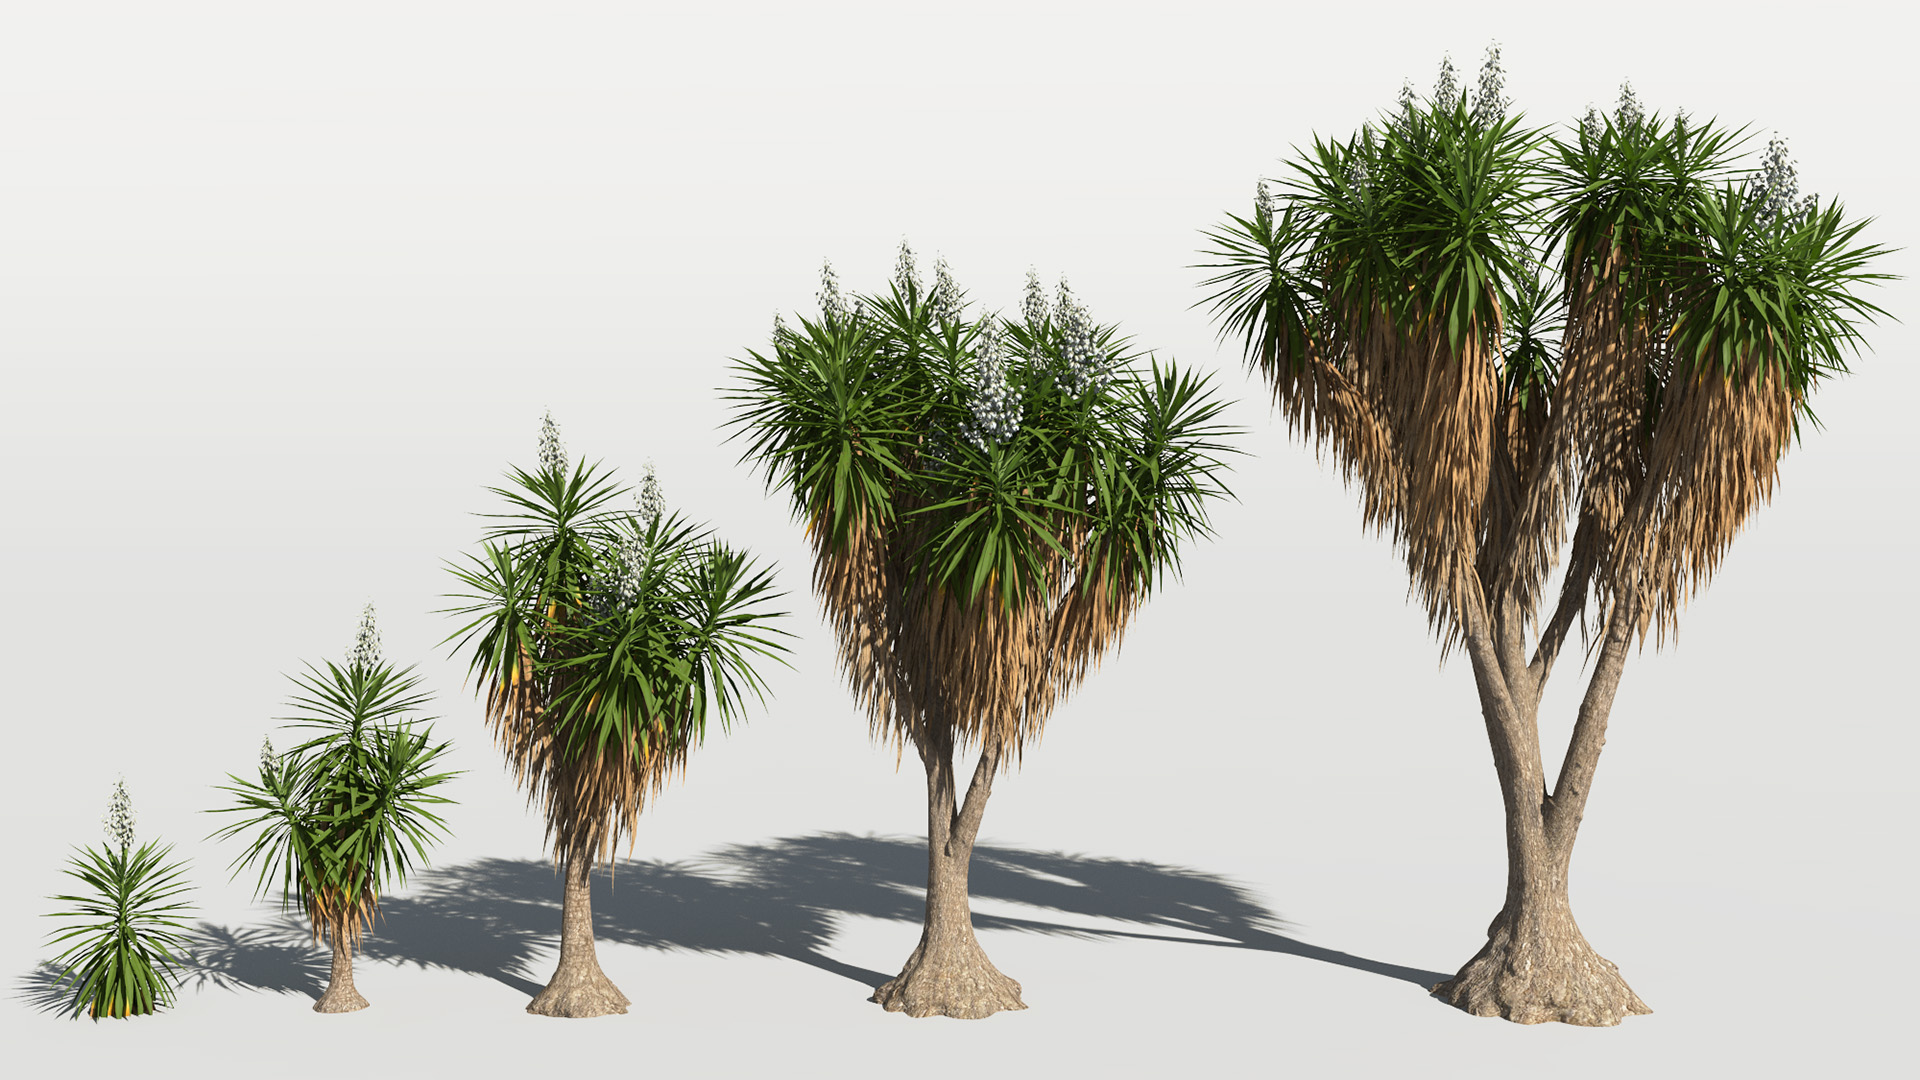 3D model of the Spineless yucca Yucca elephantipes maturity variations